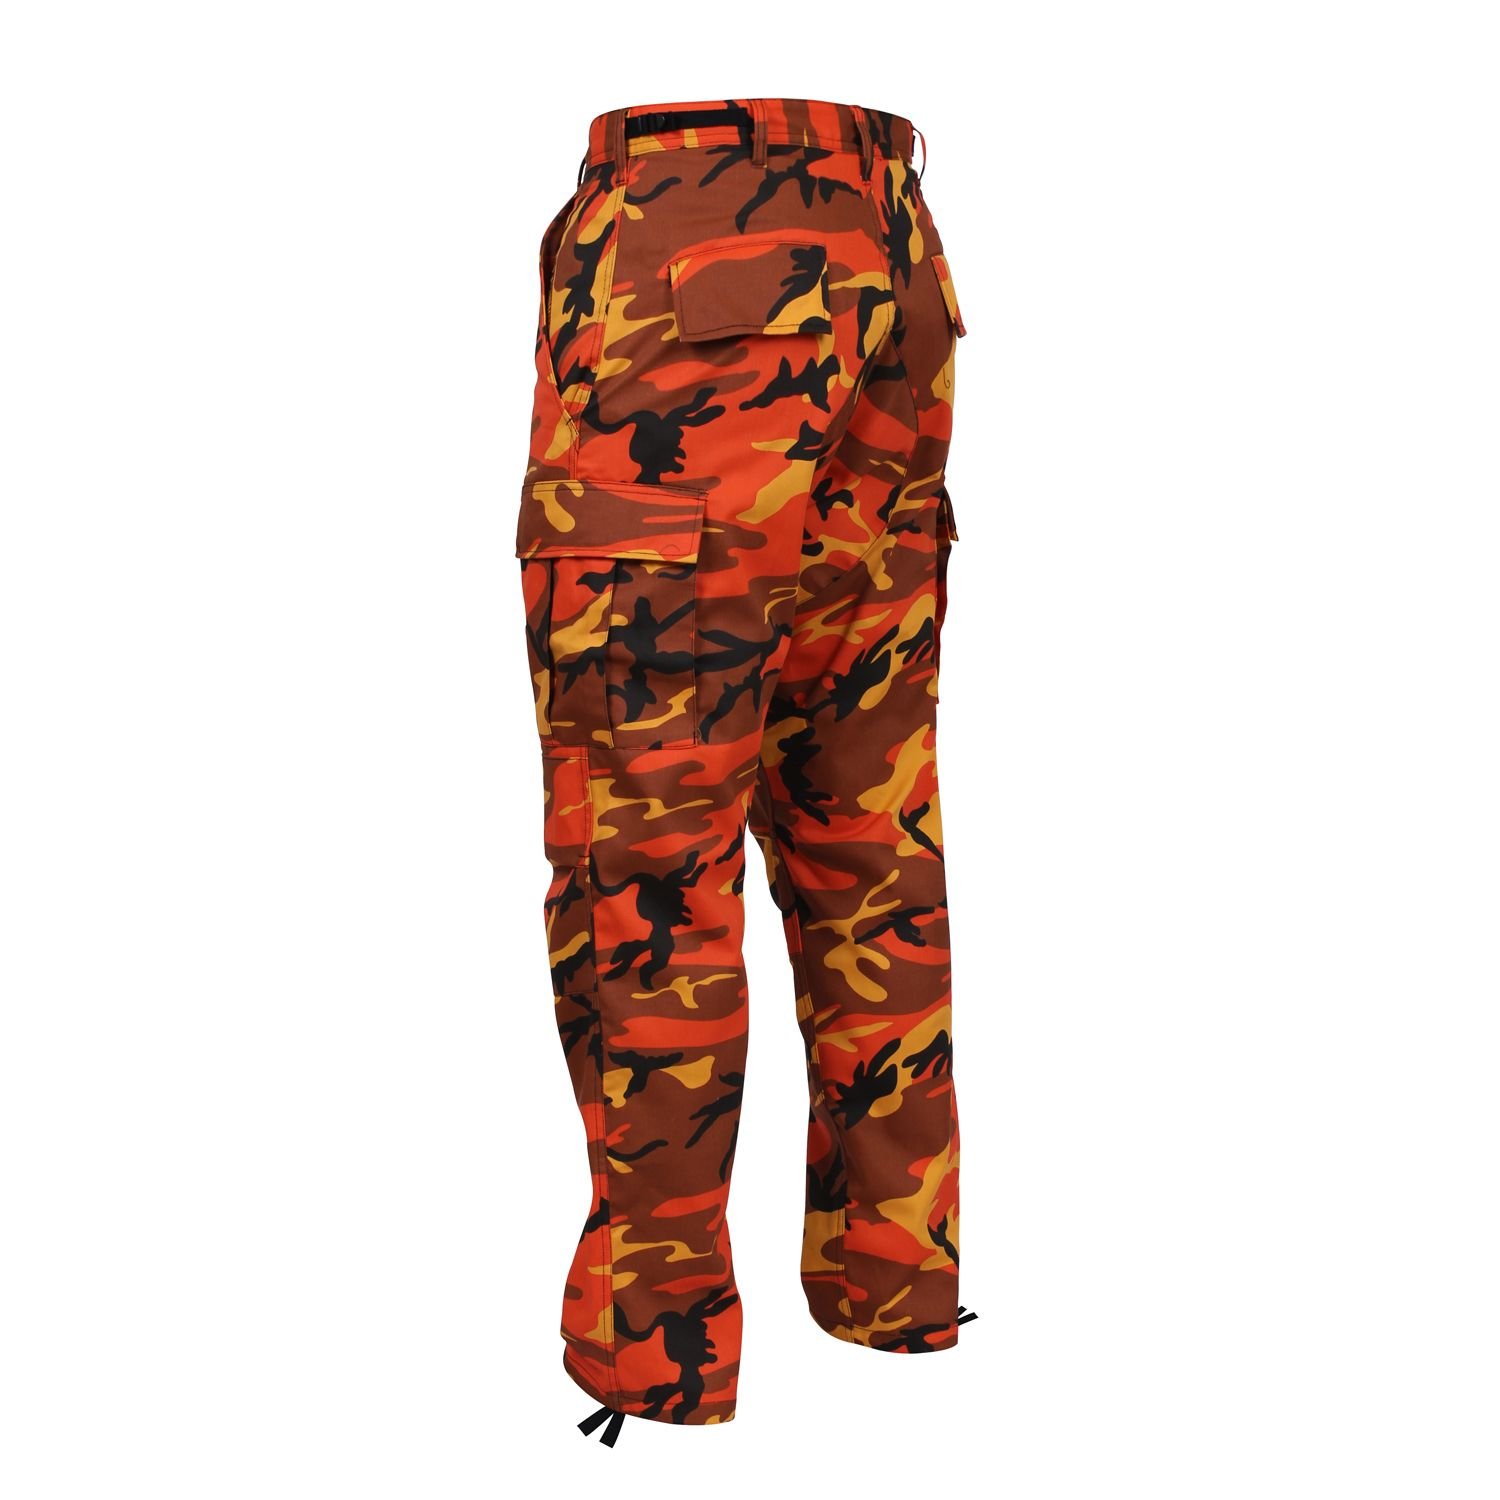 Savage Orange Camo BDU Adjustable Waist Cargo Pant